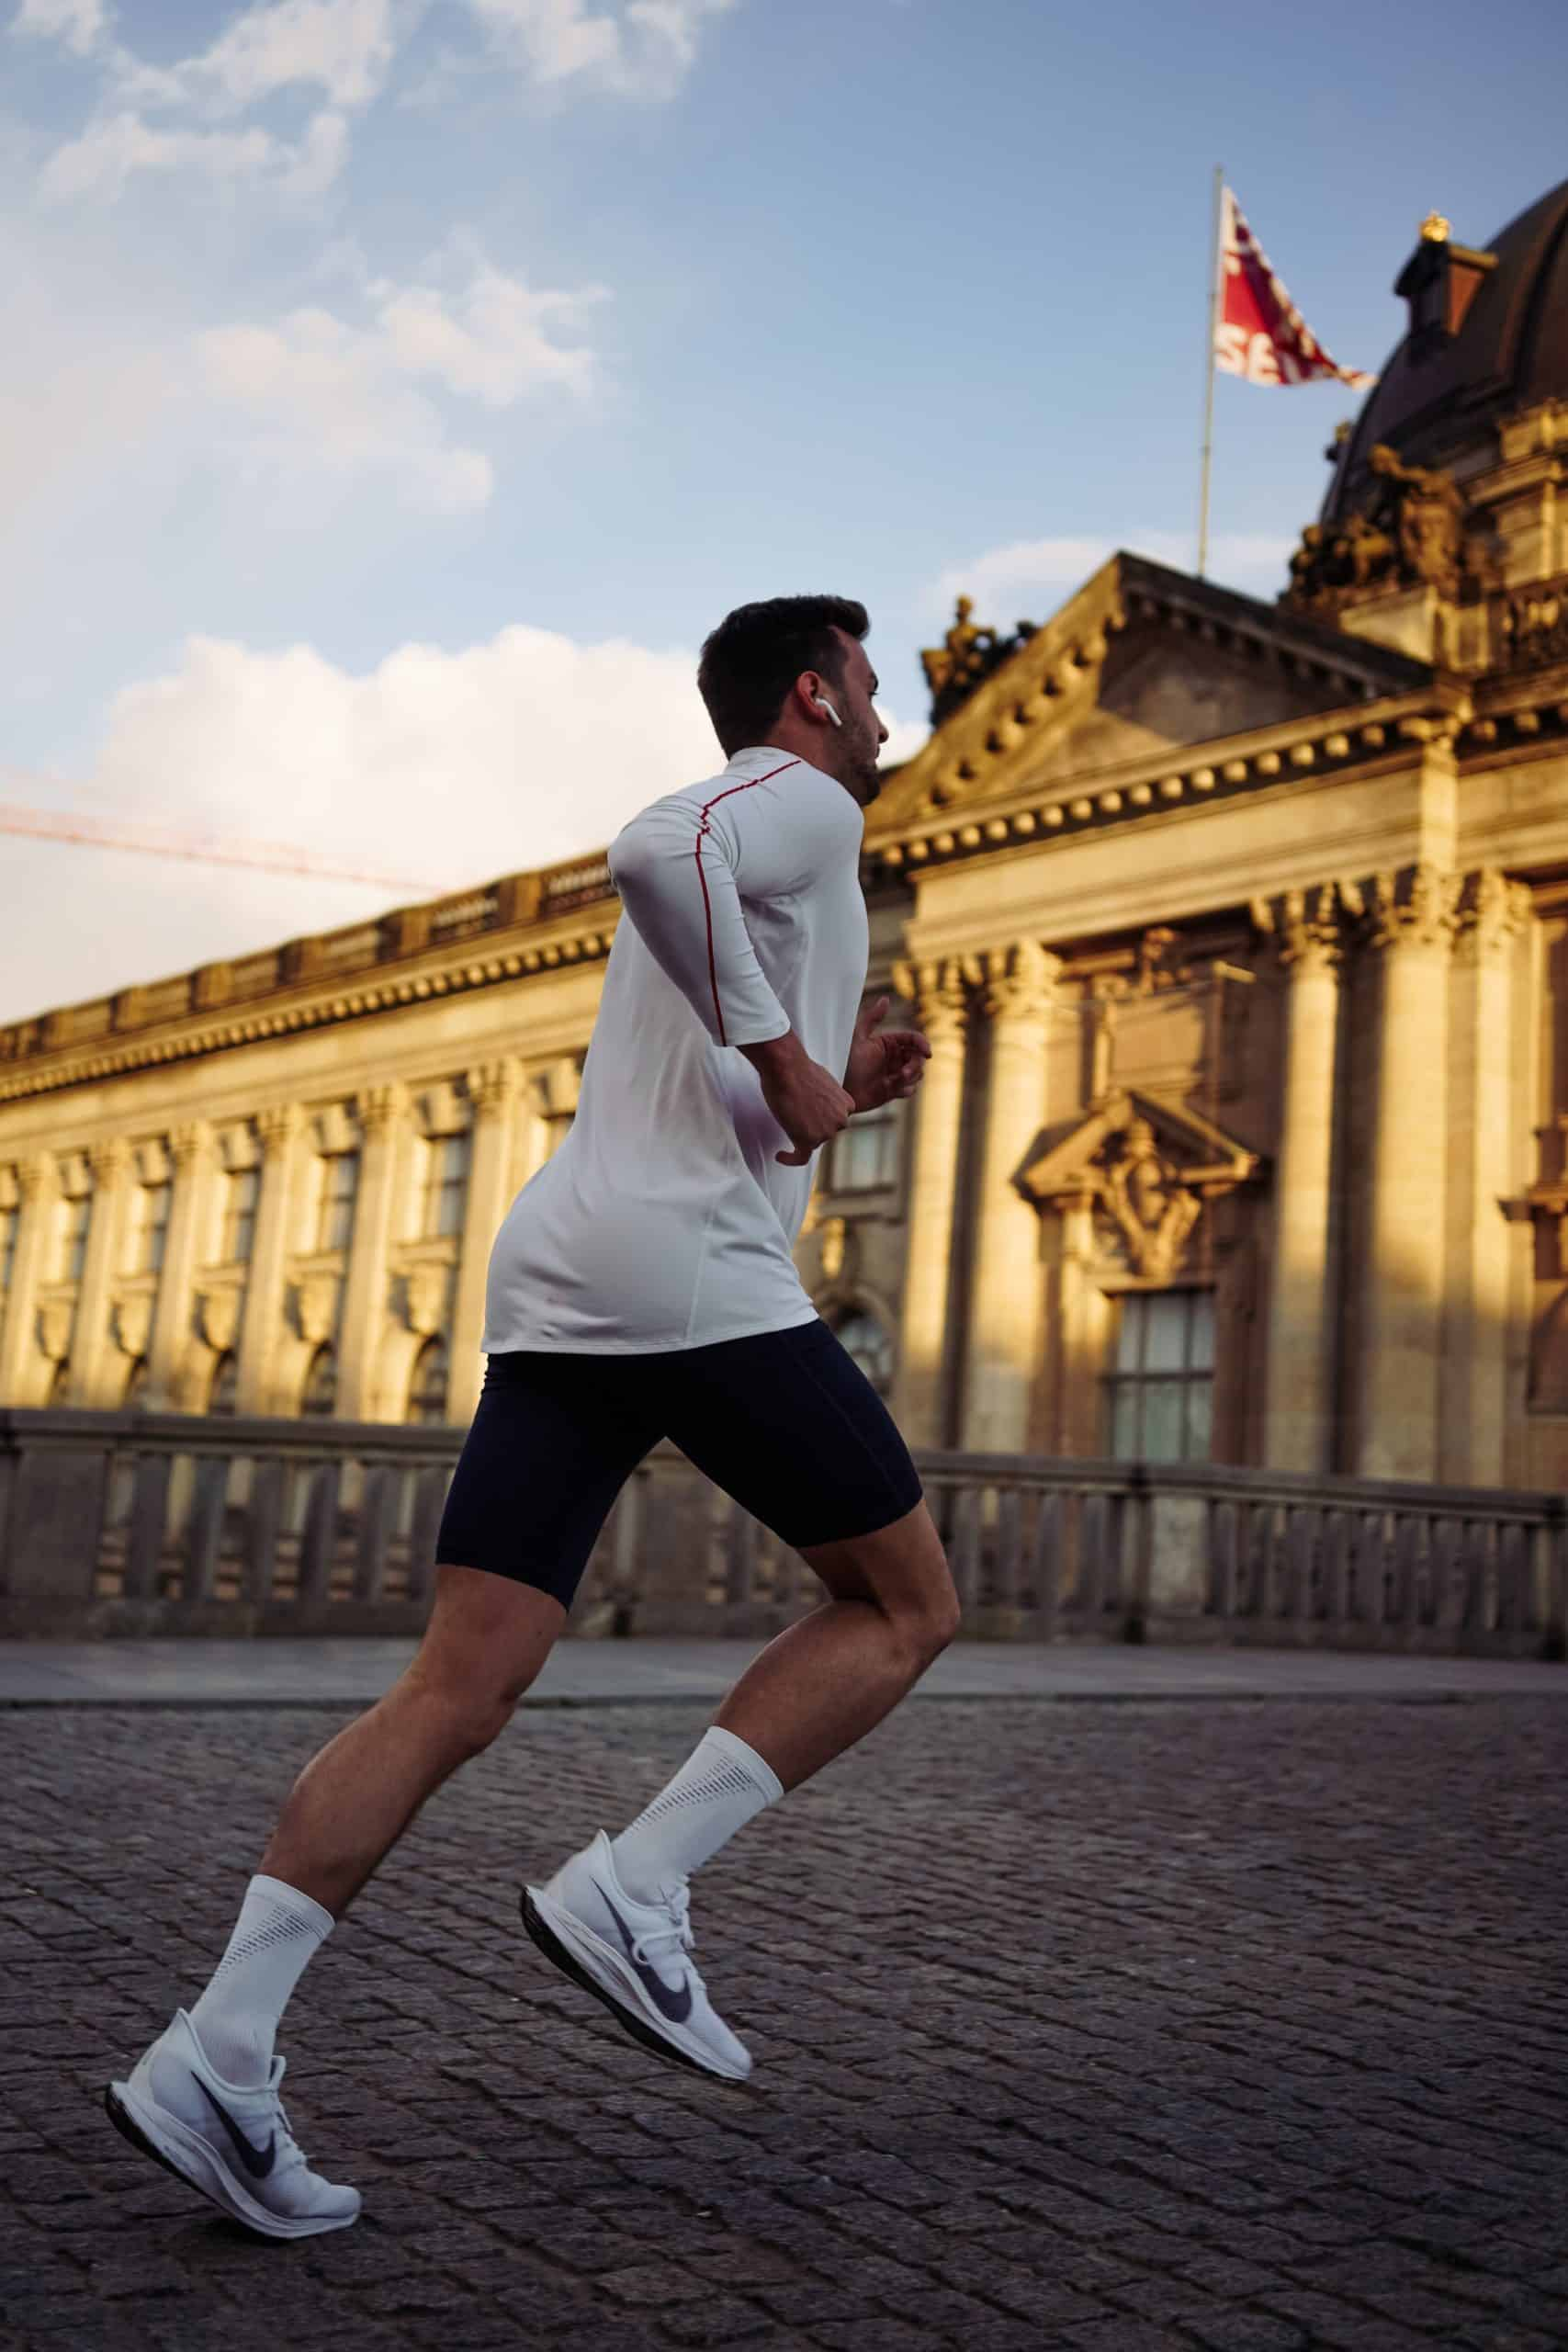 How To Find The Tips To Run Faster